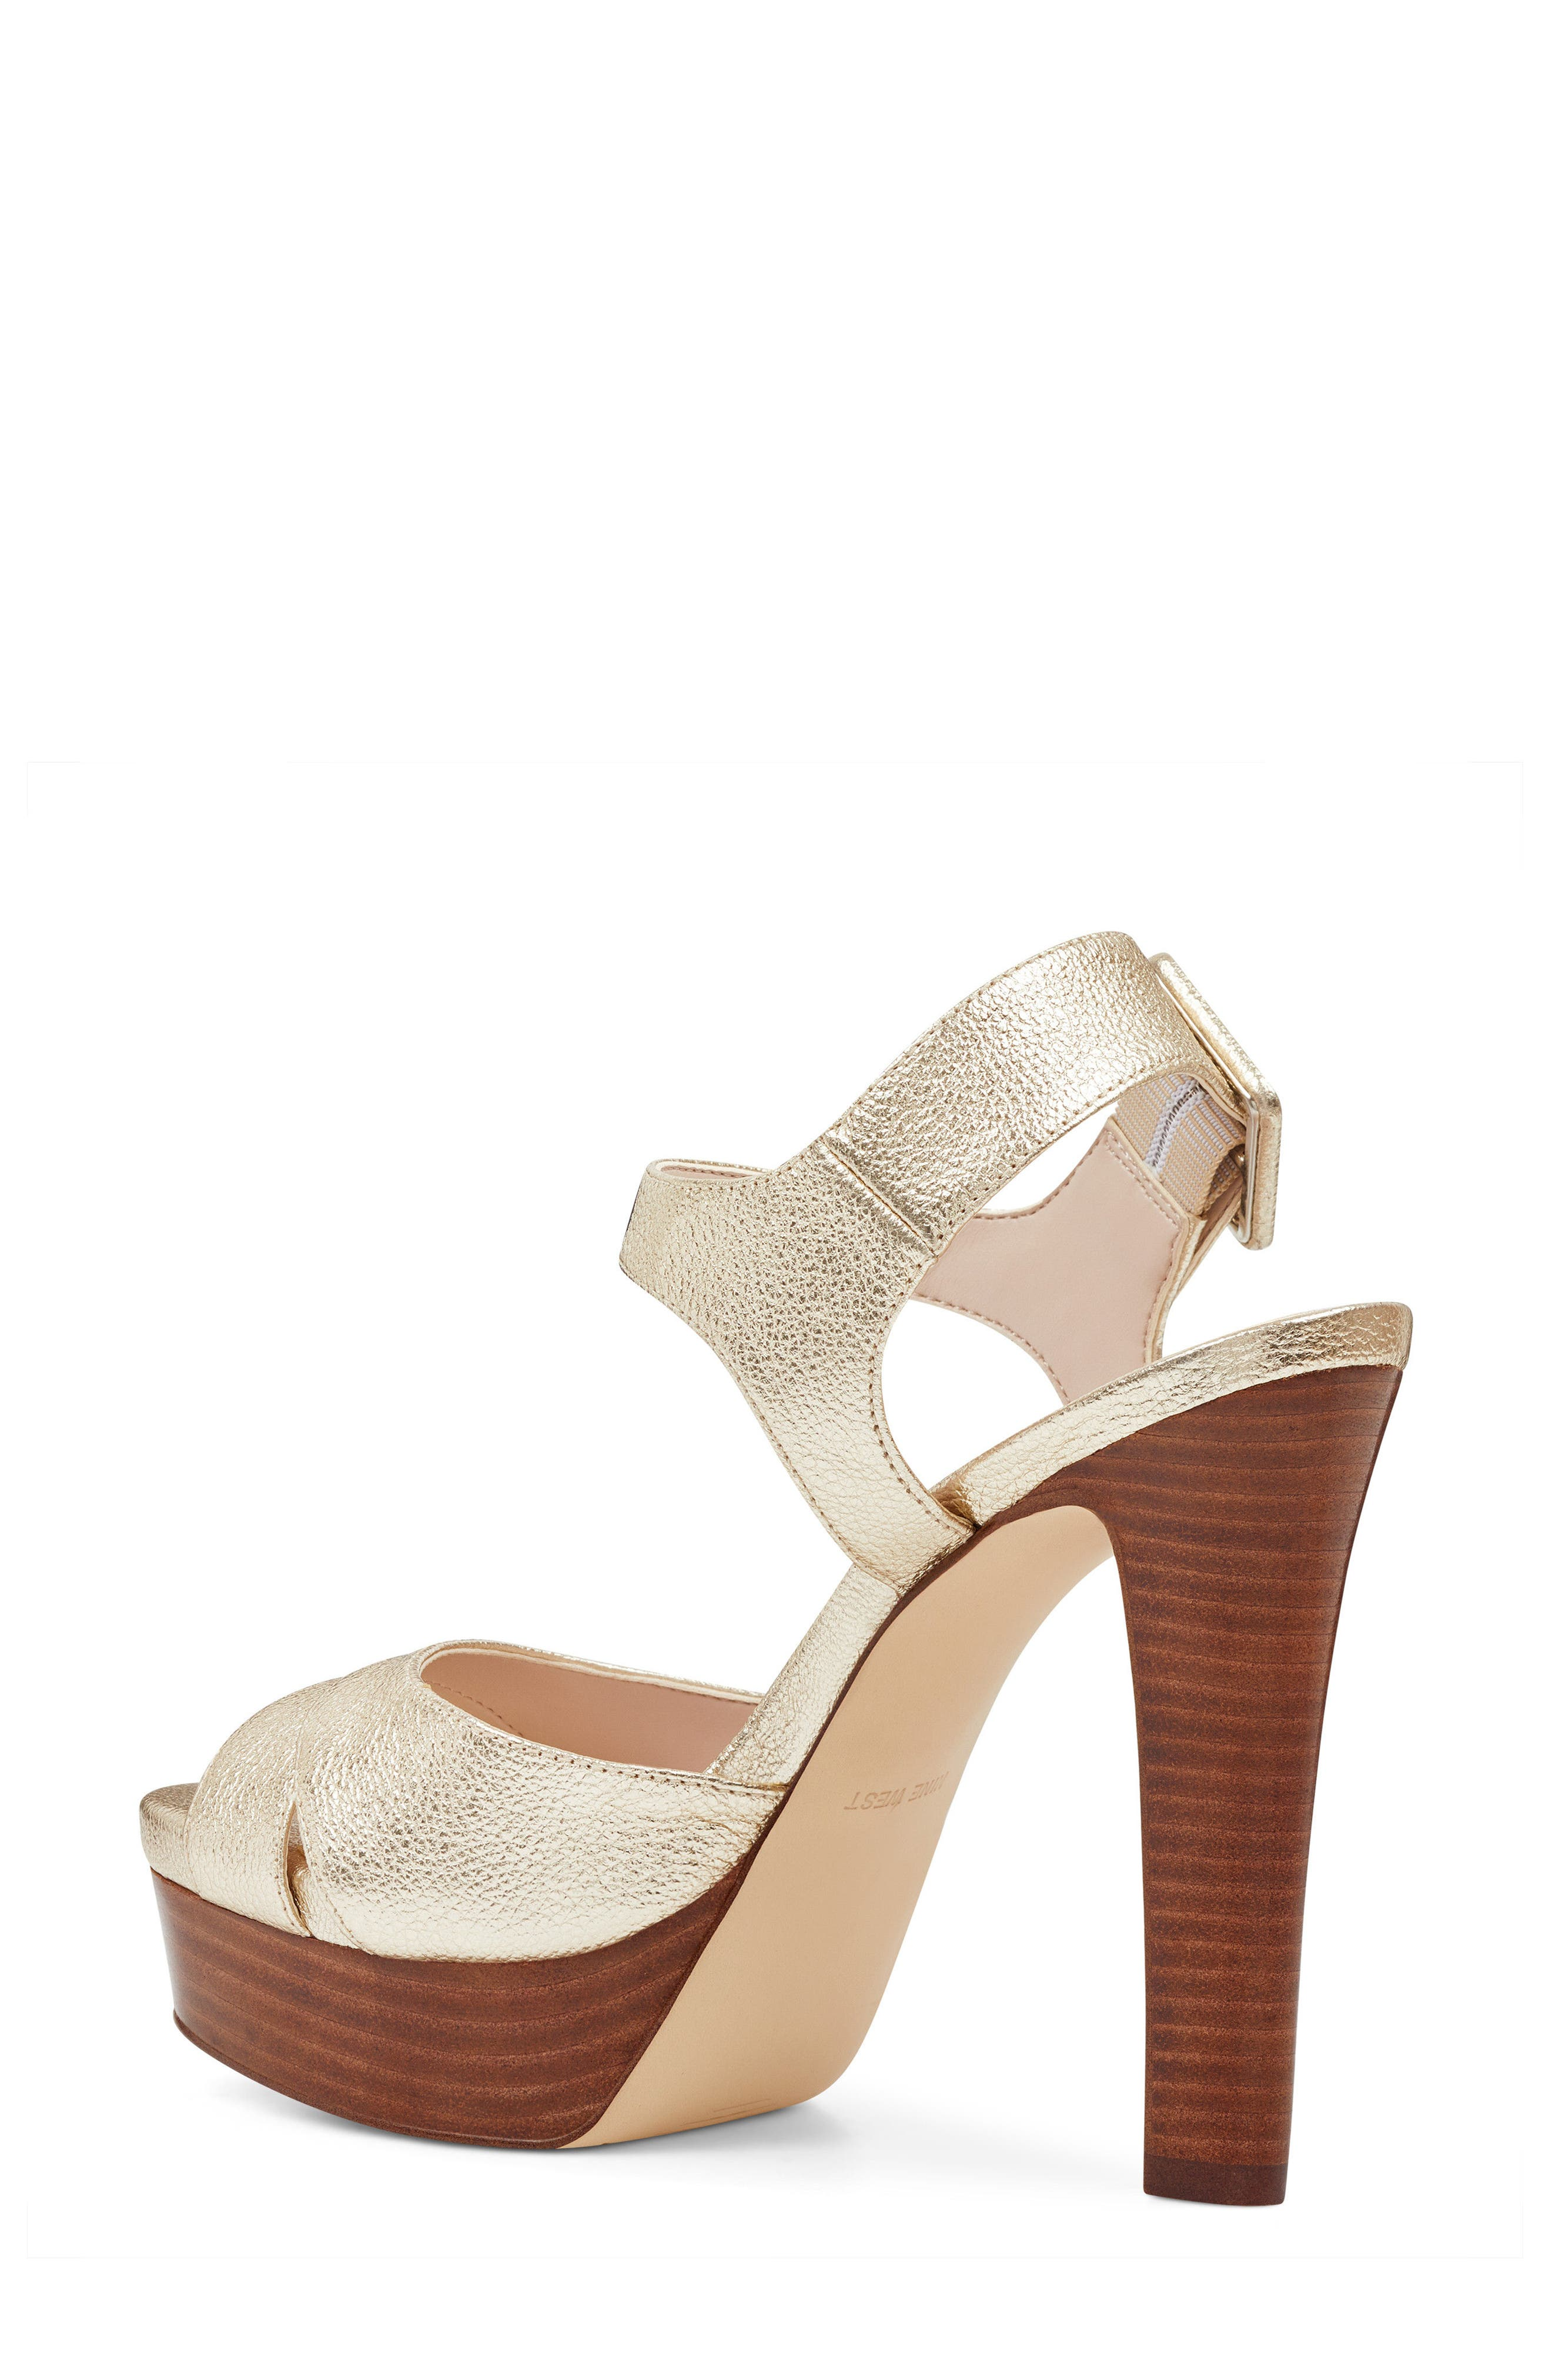 Ibyn Platform Sandal,                             Alternate thumbnail 2, color,                             Light Gold Leather